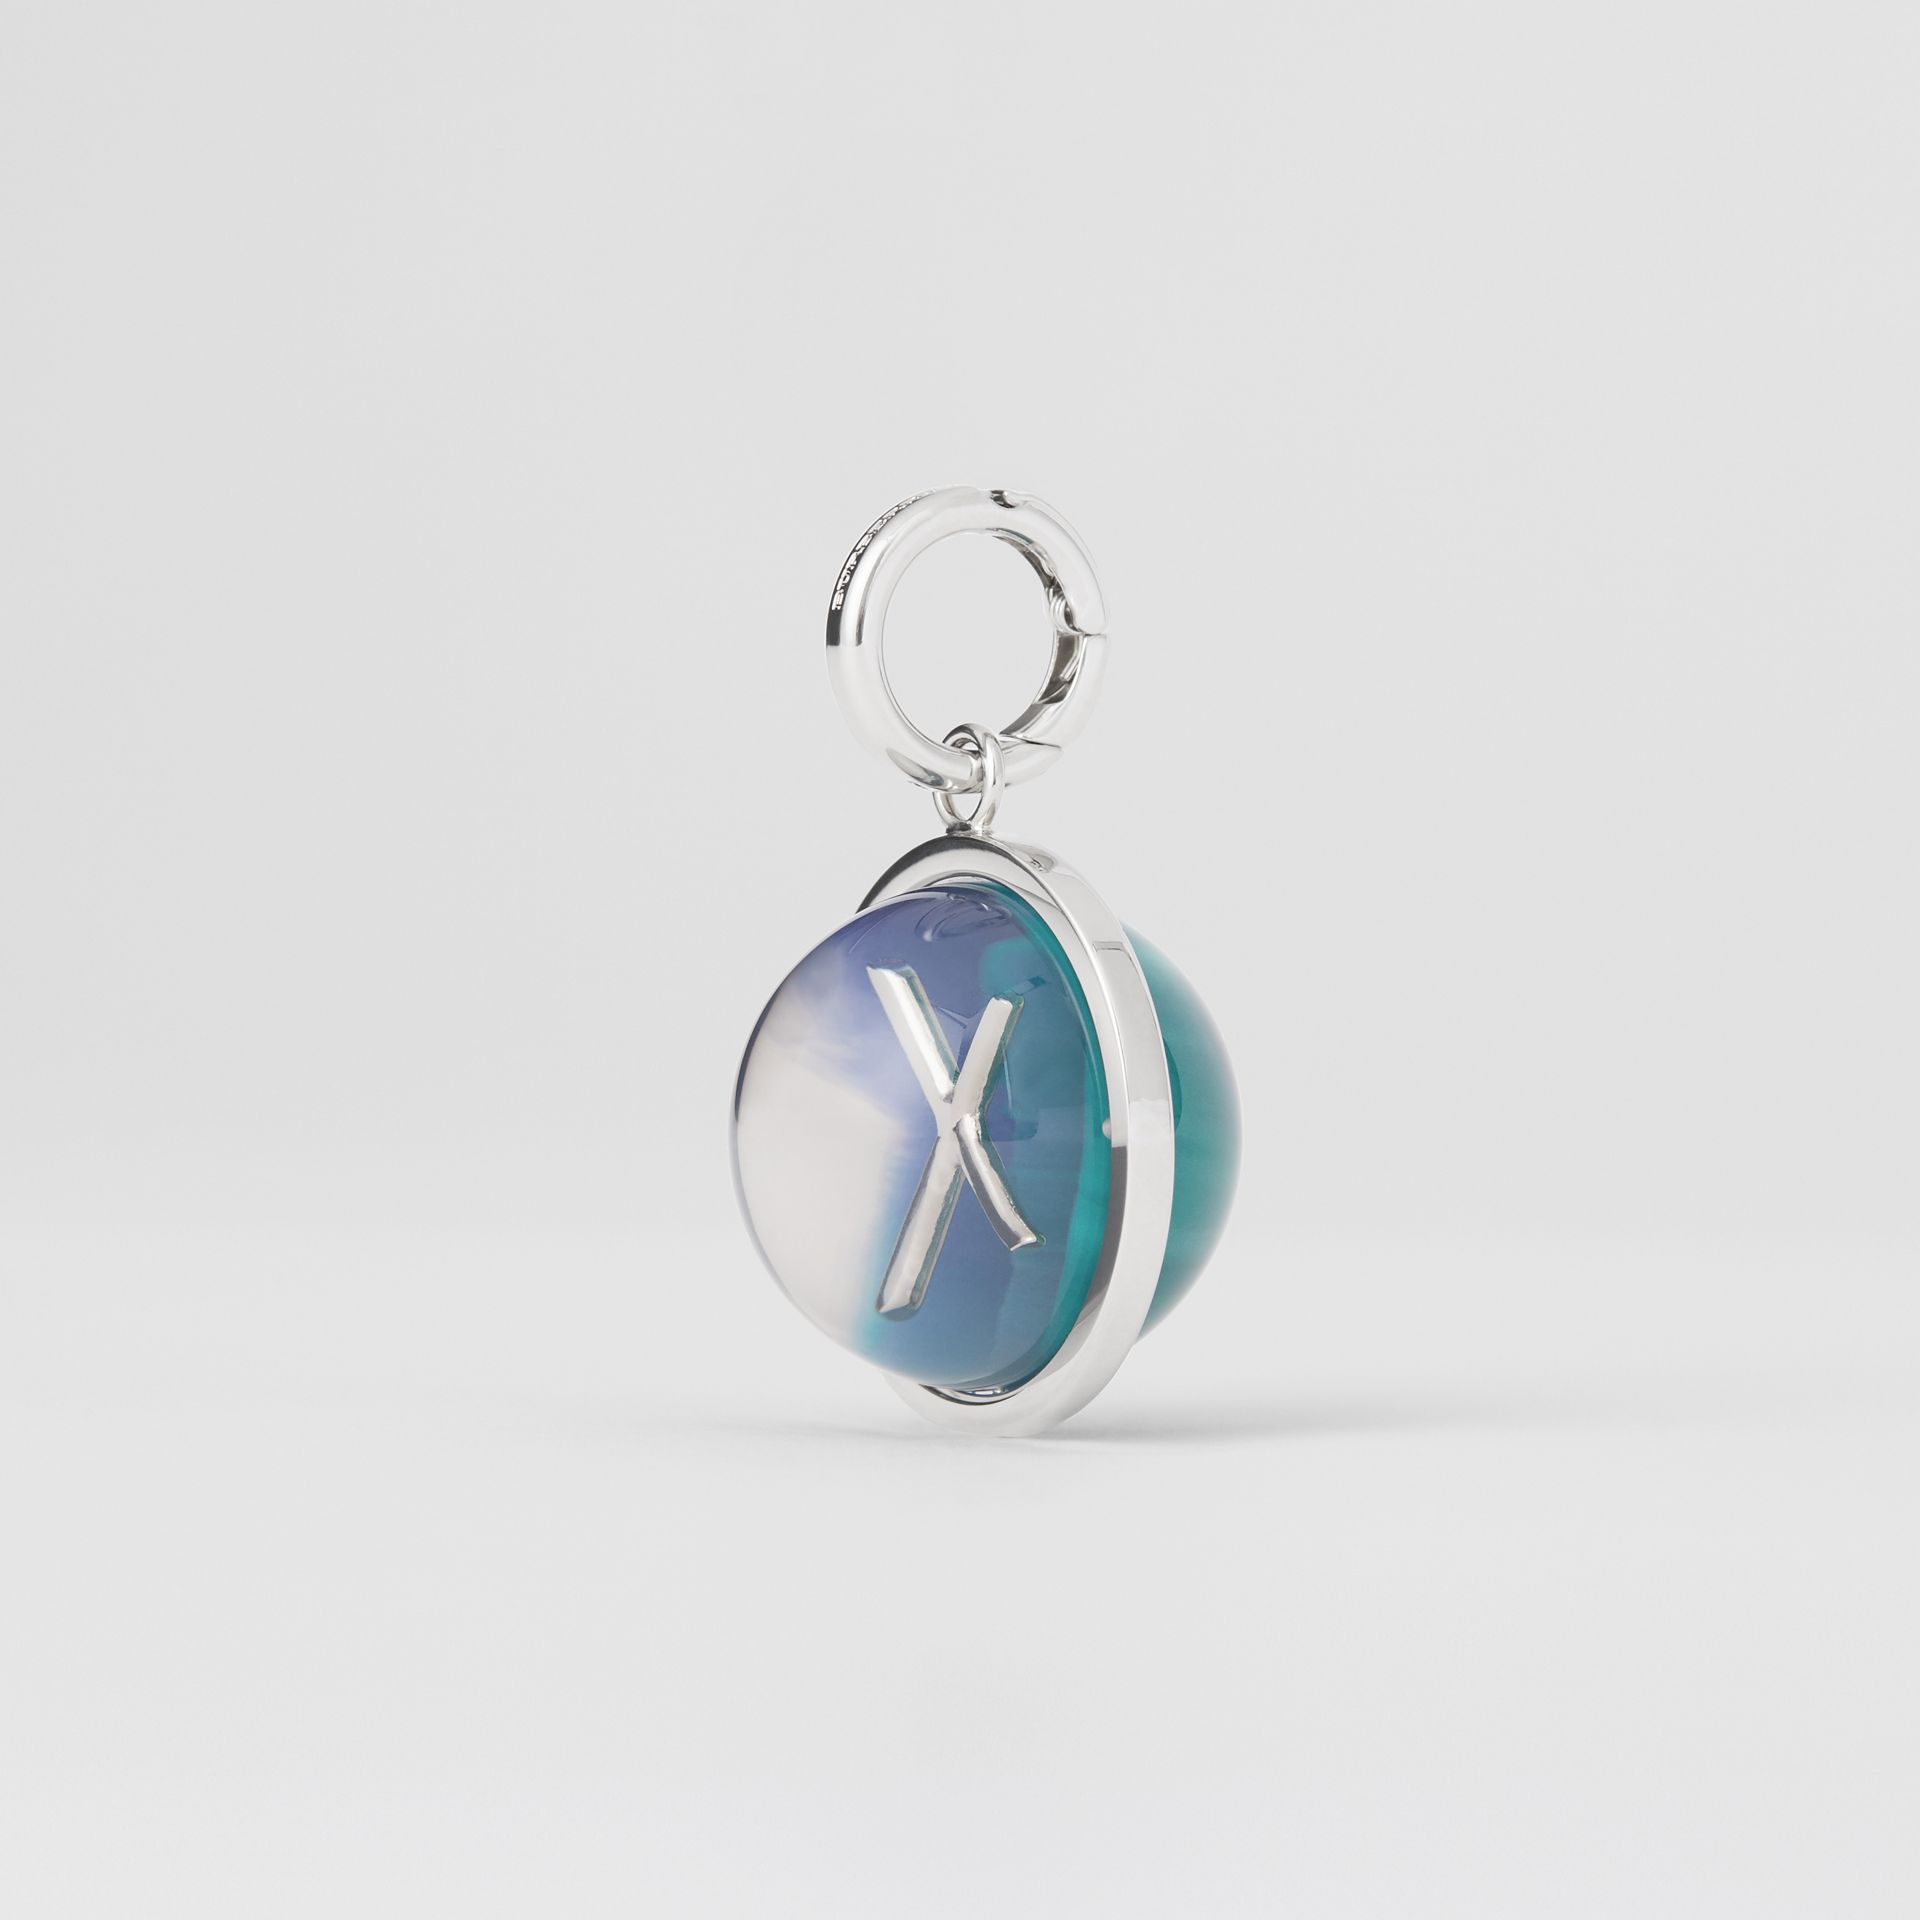 Marbled Resin 'X' Alphabet Charm in Palladio/ocean Blue - Women | Burberry United Kingdom - gallery image 4